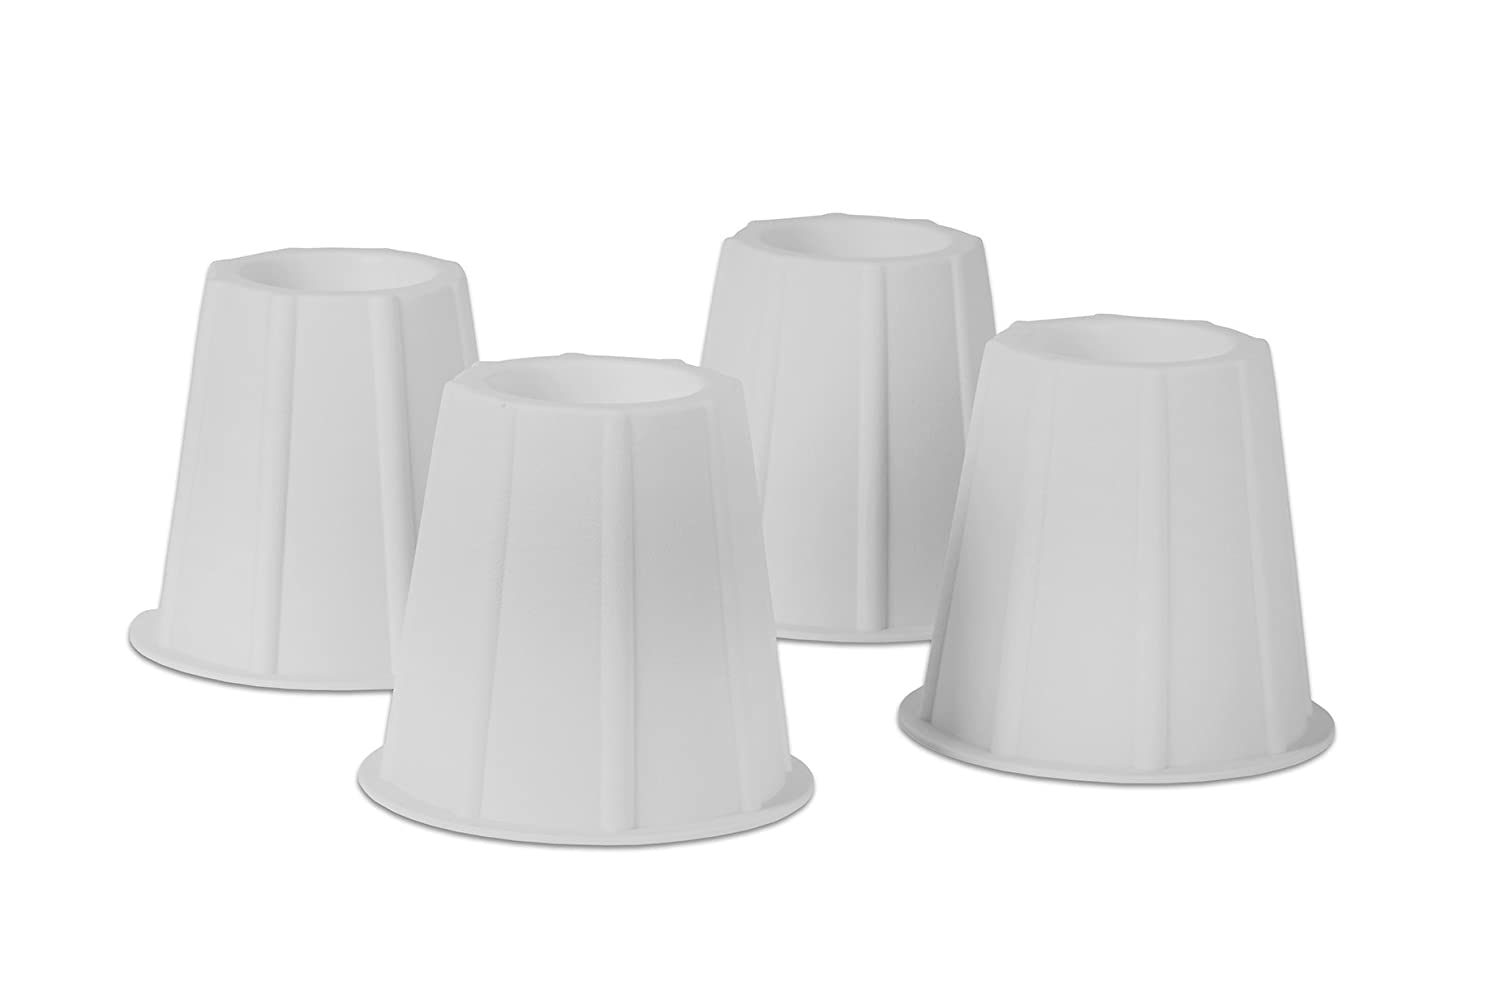 Home-it® 5 to 6-inch SUPER QUALITY bed risers, White round shaped, bed riser helps you storage under the bed 4-pack